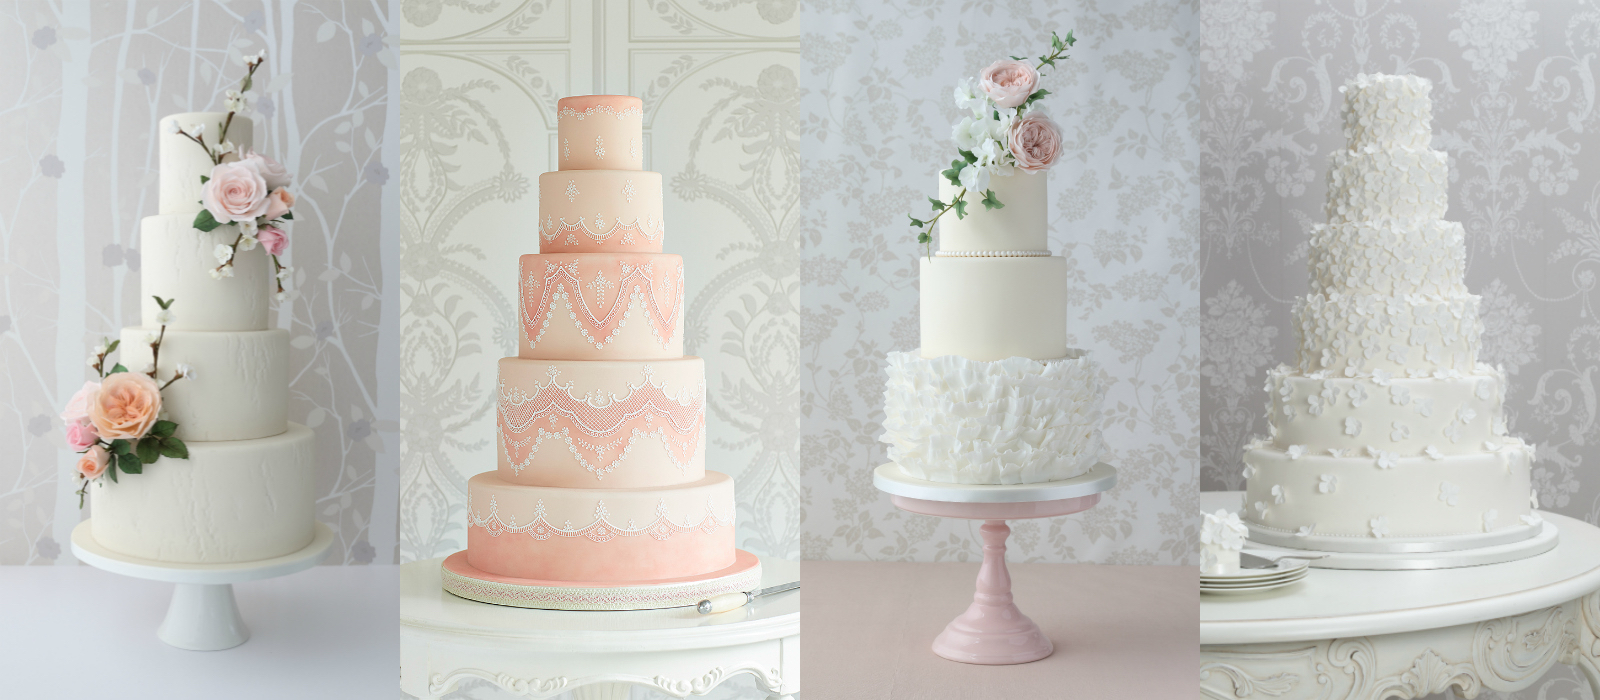 Zoe Clark Cakes Wedding Cakes Collection